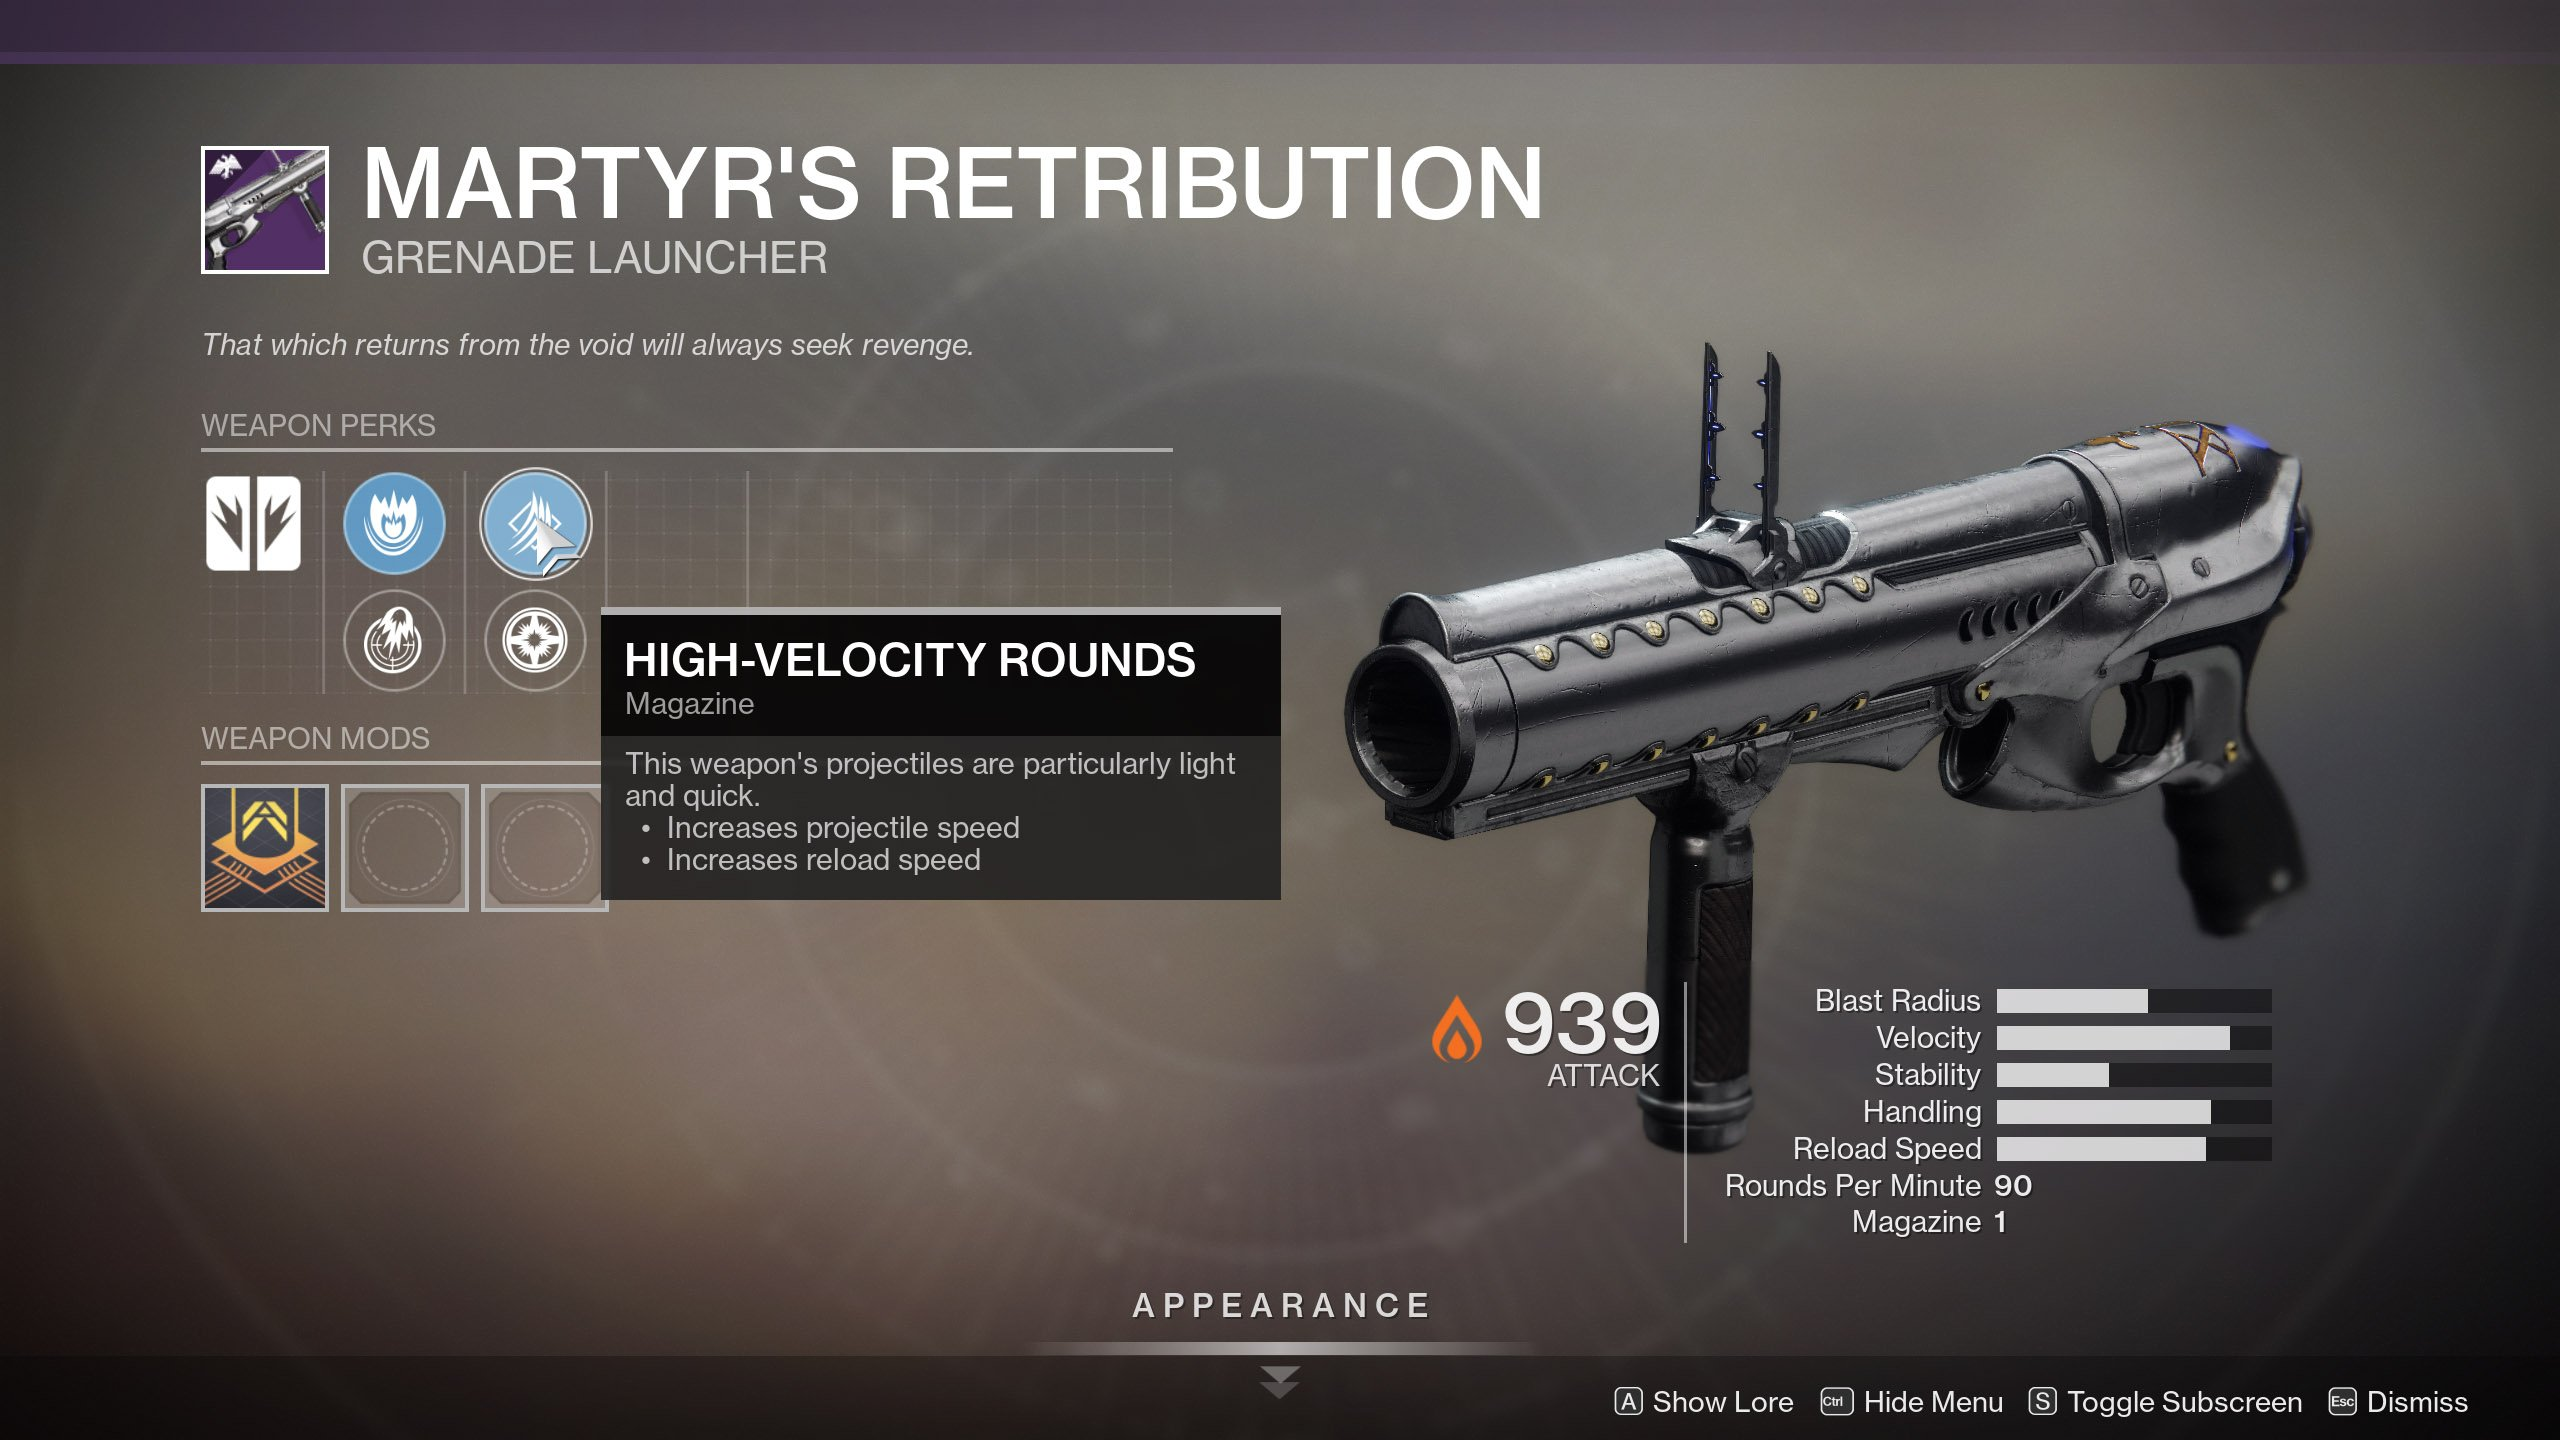 Martyr's Retribution God Roll Destiny 2